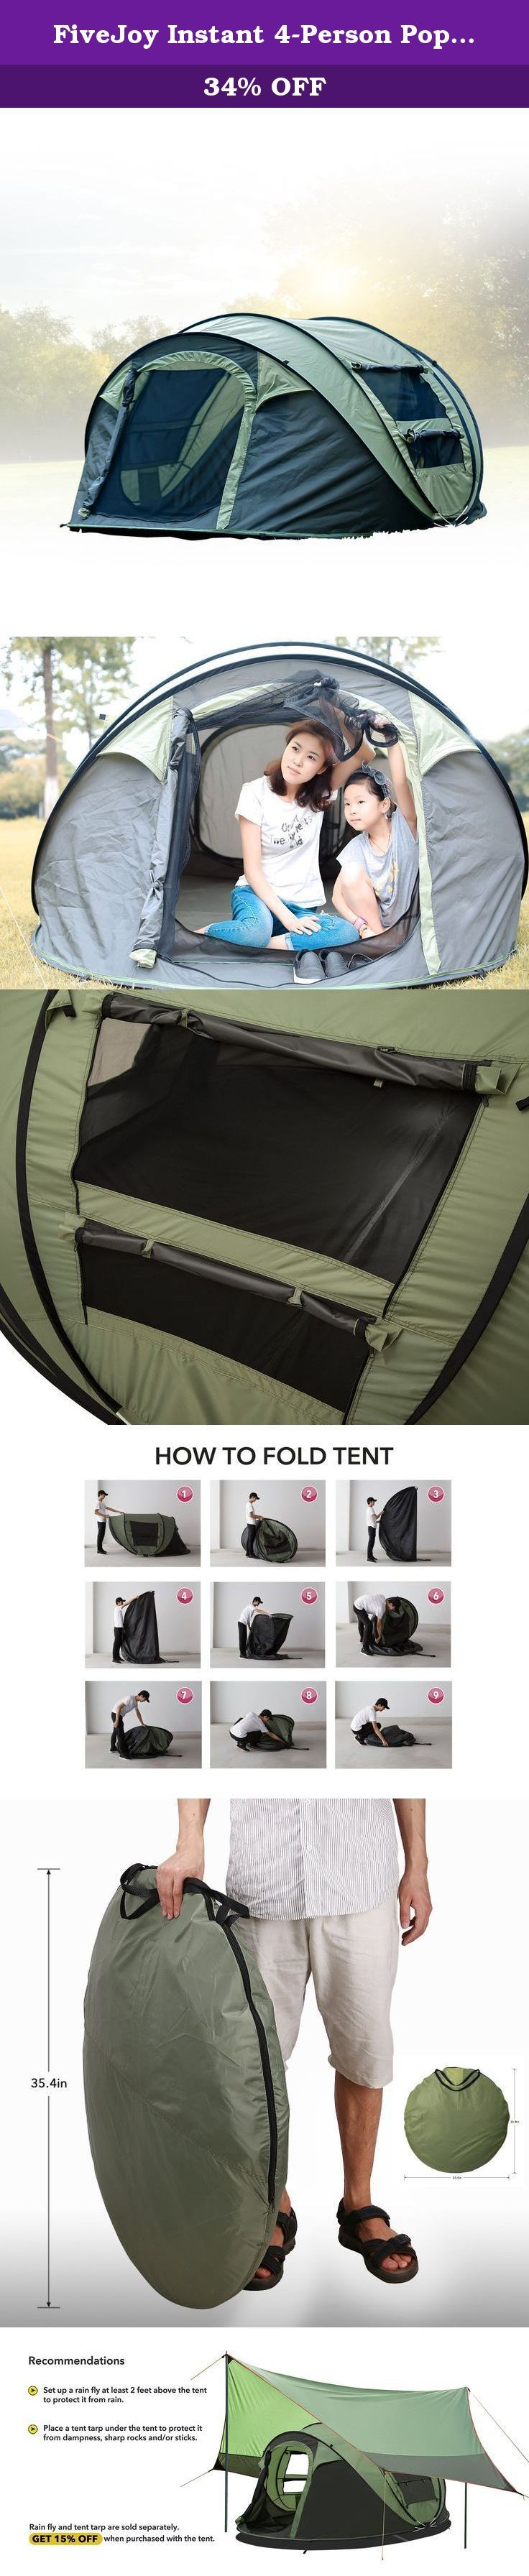 FiveJoy Instant 4-Person Pop Up Tent - Set Up in Lightning Speed, Easy Fold Up into Portable Carrying Case Including Stakes - Ideal Automatic Shelter for Family Camping, Hiking, Outdoor, Festivals. Camping for the first time? Don't waste precious vacation time setting up your tent! Try our FiveJoy INSTANT Pop-Up Tent and get it set up in LIGHTNING SPEED . Set up is easy: remove the cover, unstrap, and release the tent into the air. It'll pop right open before it hits the ground! Packing…